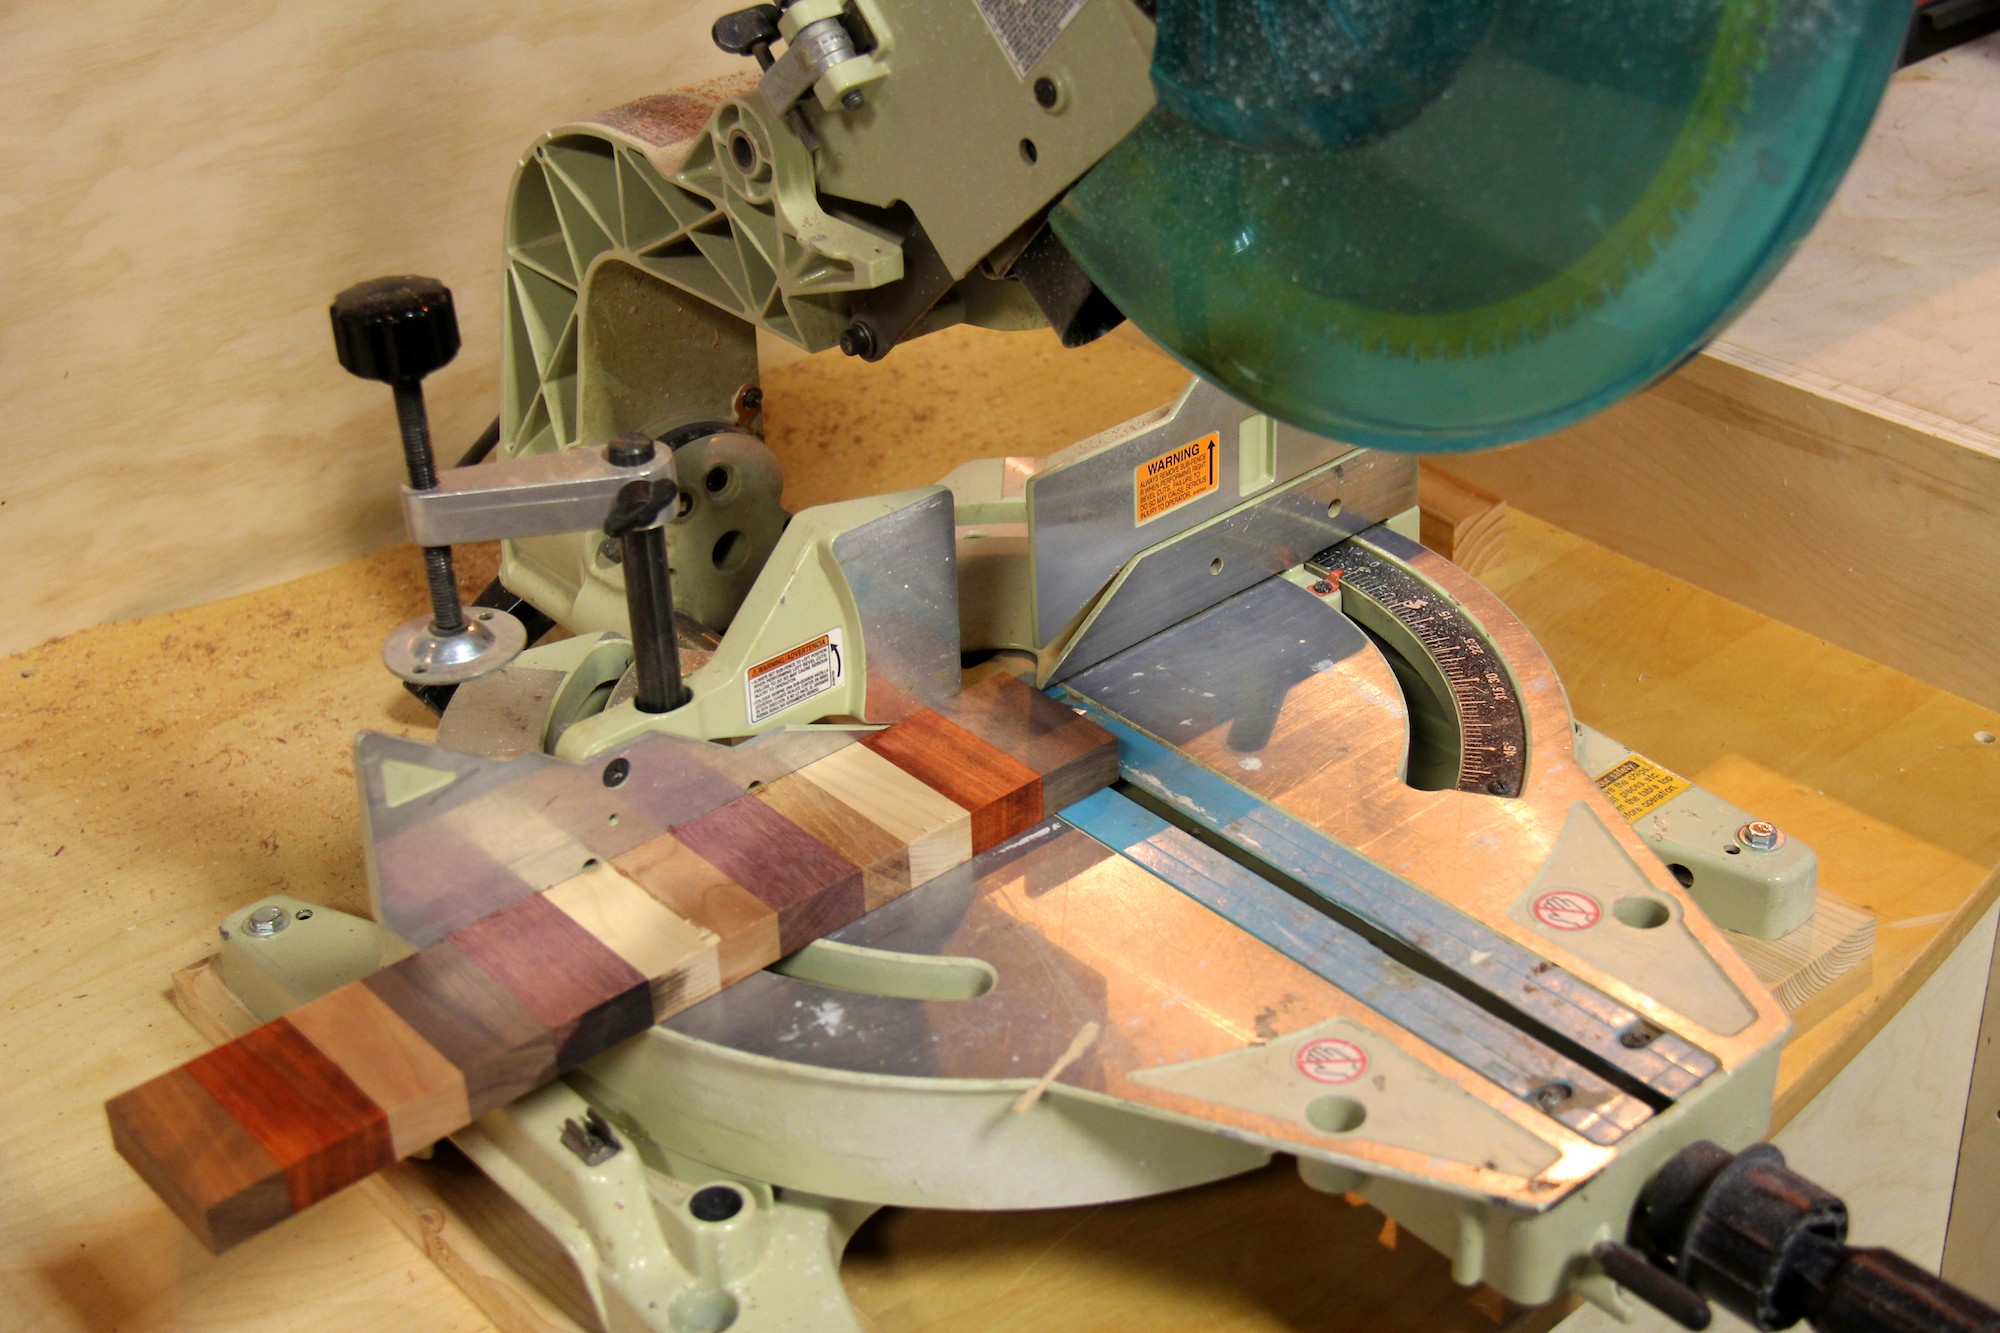 Picture of Miter Saw Edges to Prepare for Gluing